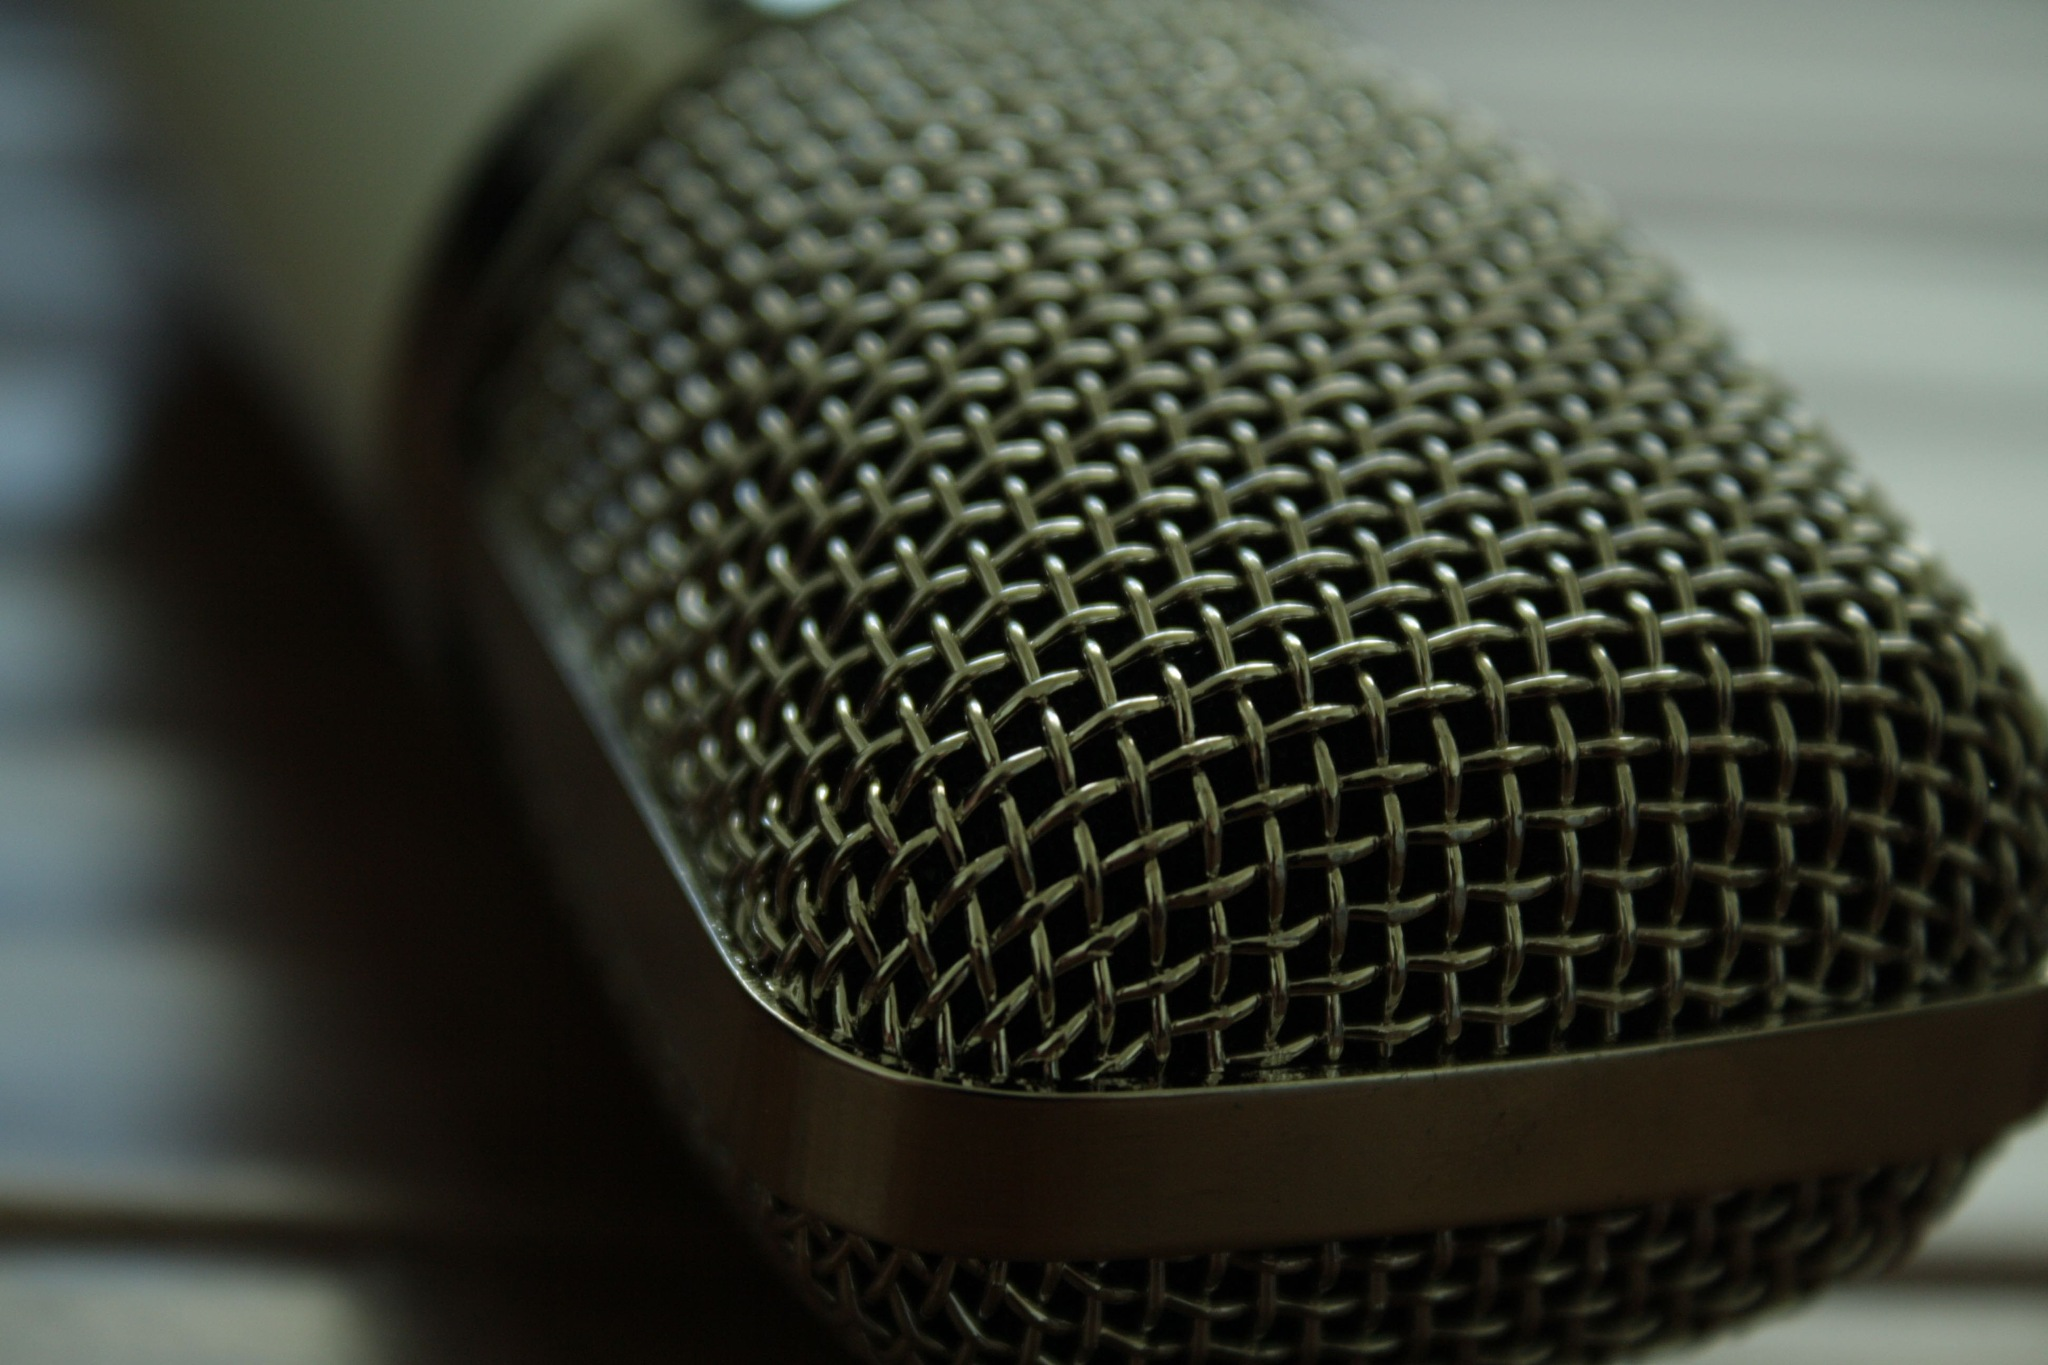 Microphone by Isabelle A